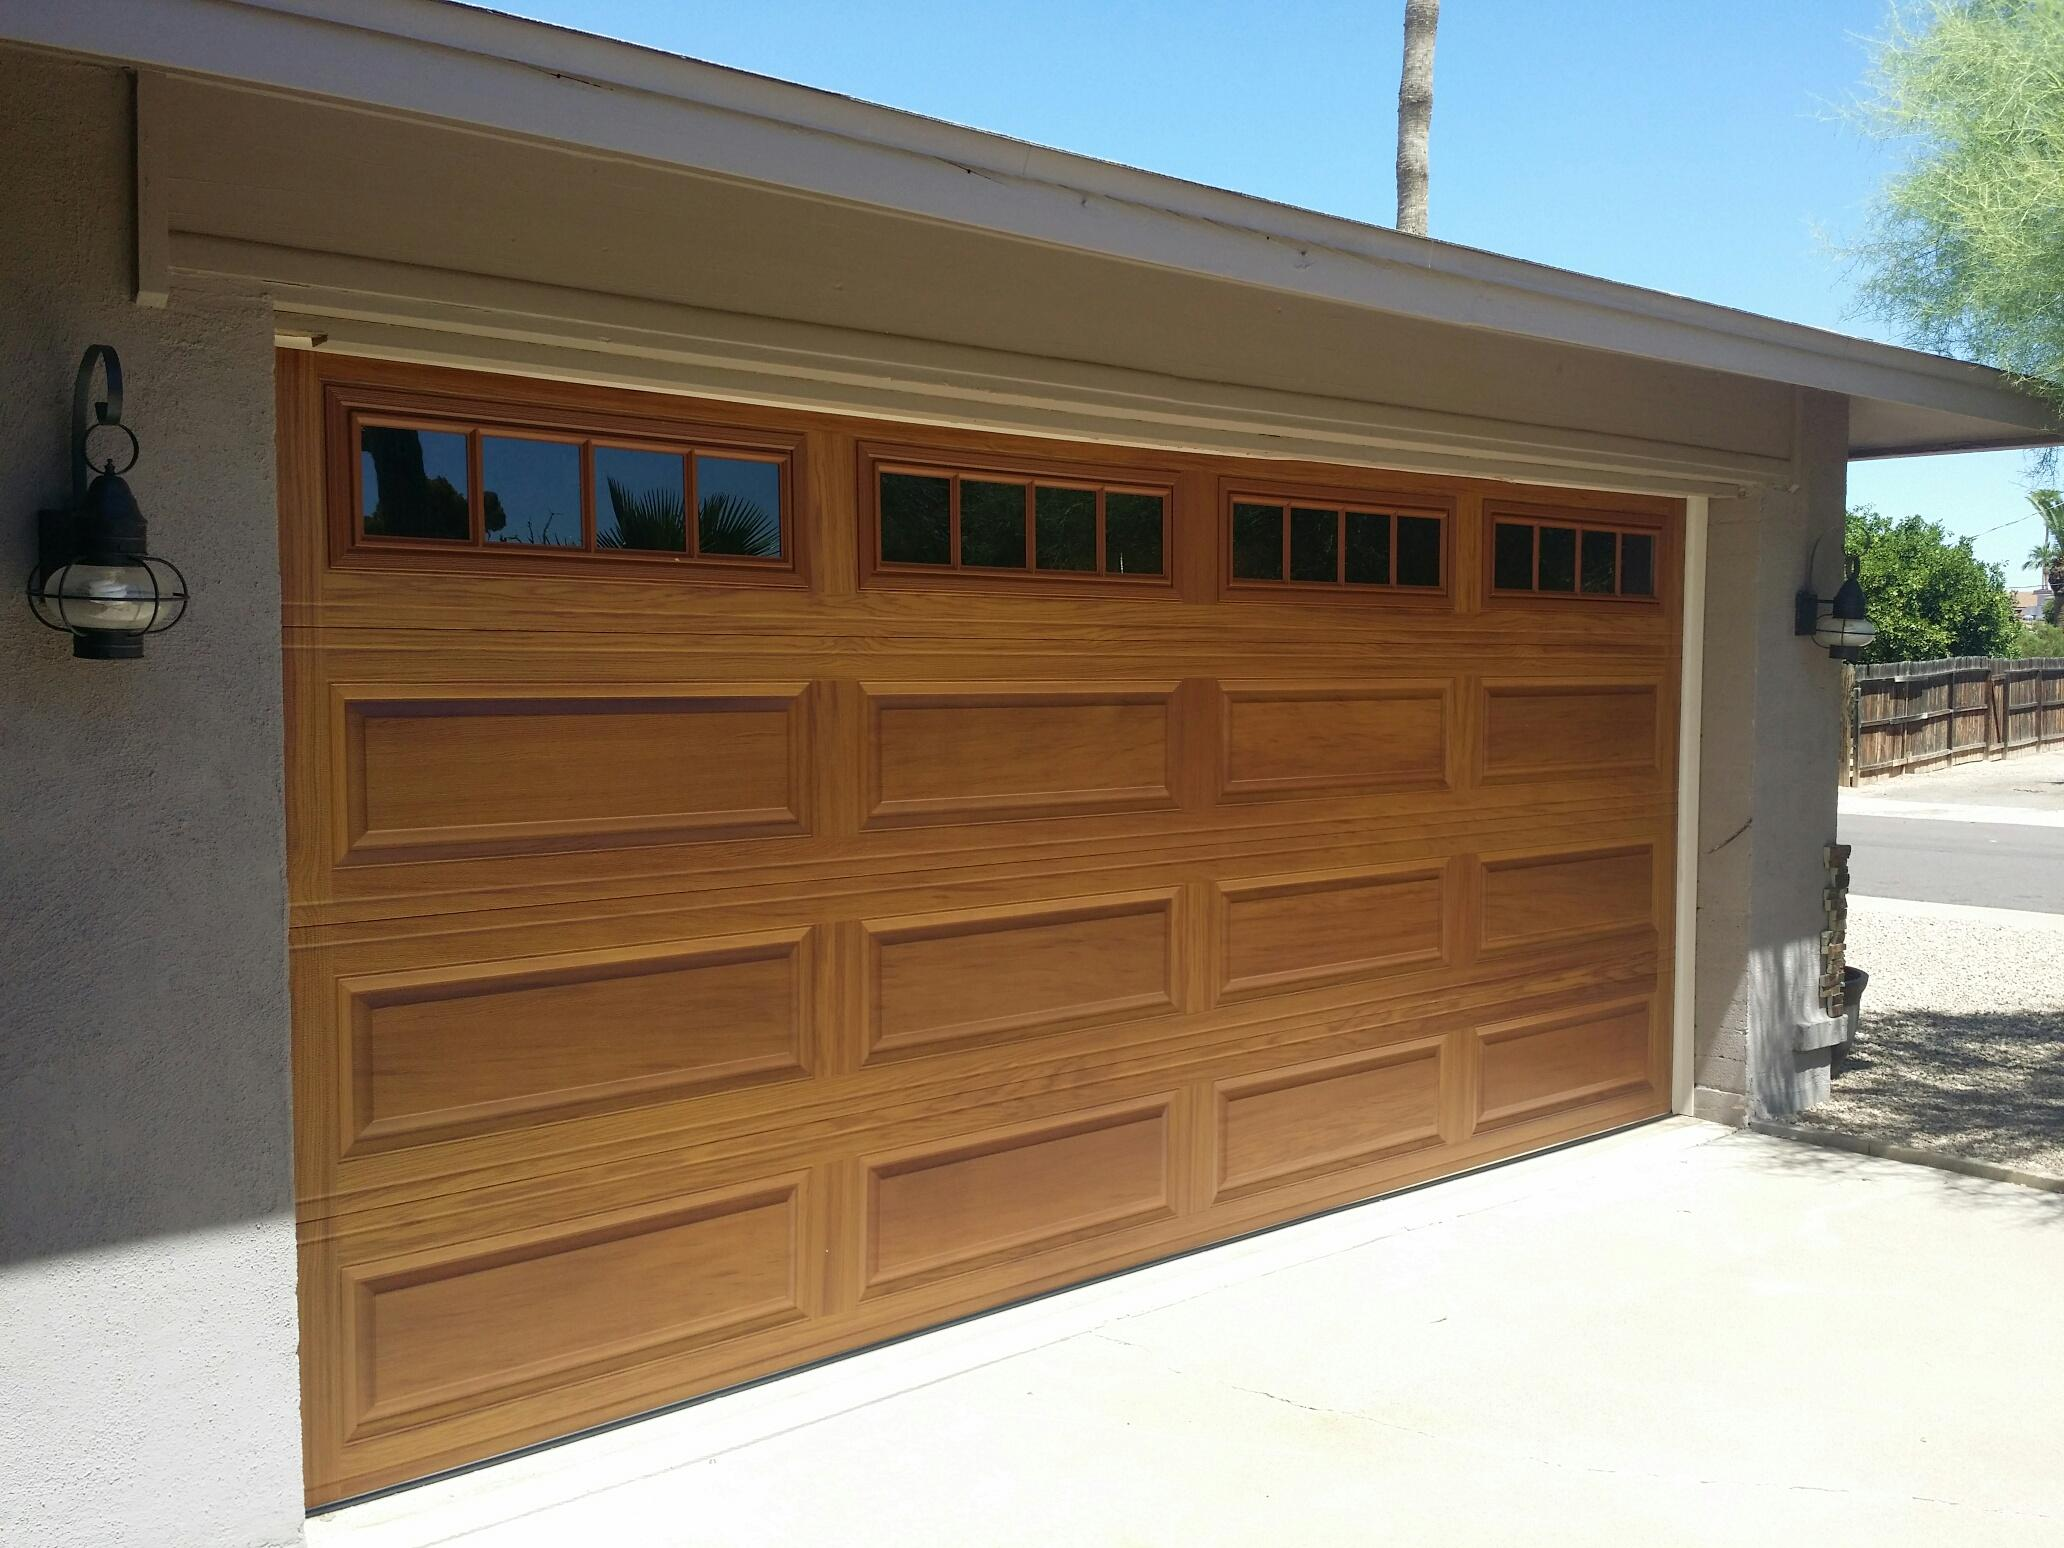 new-wood-garage-lake-havasu